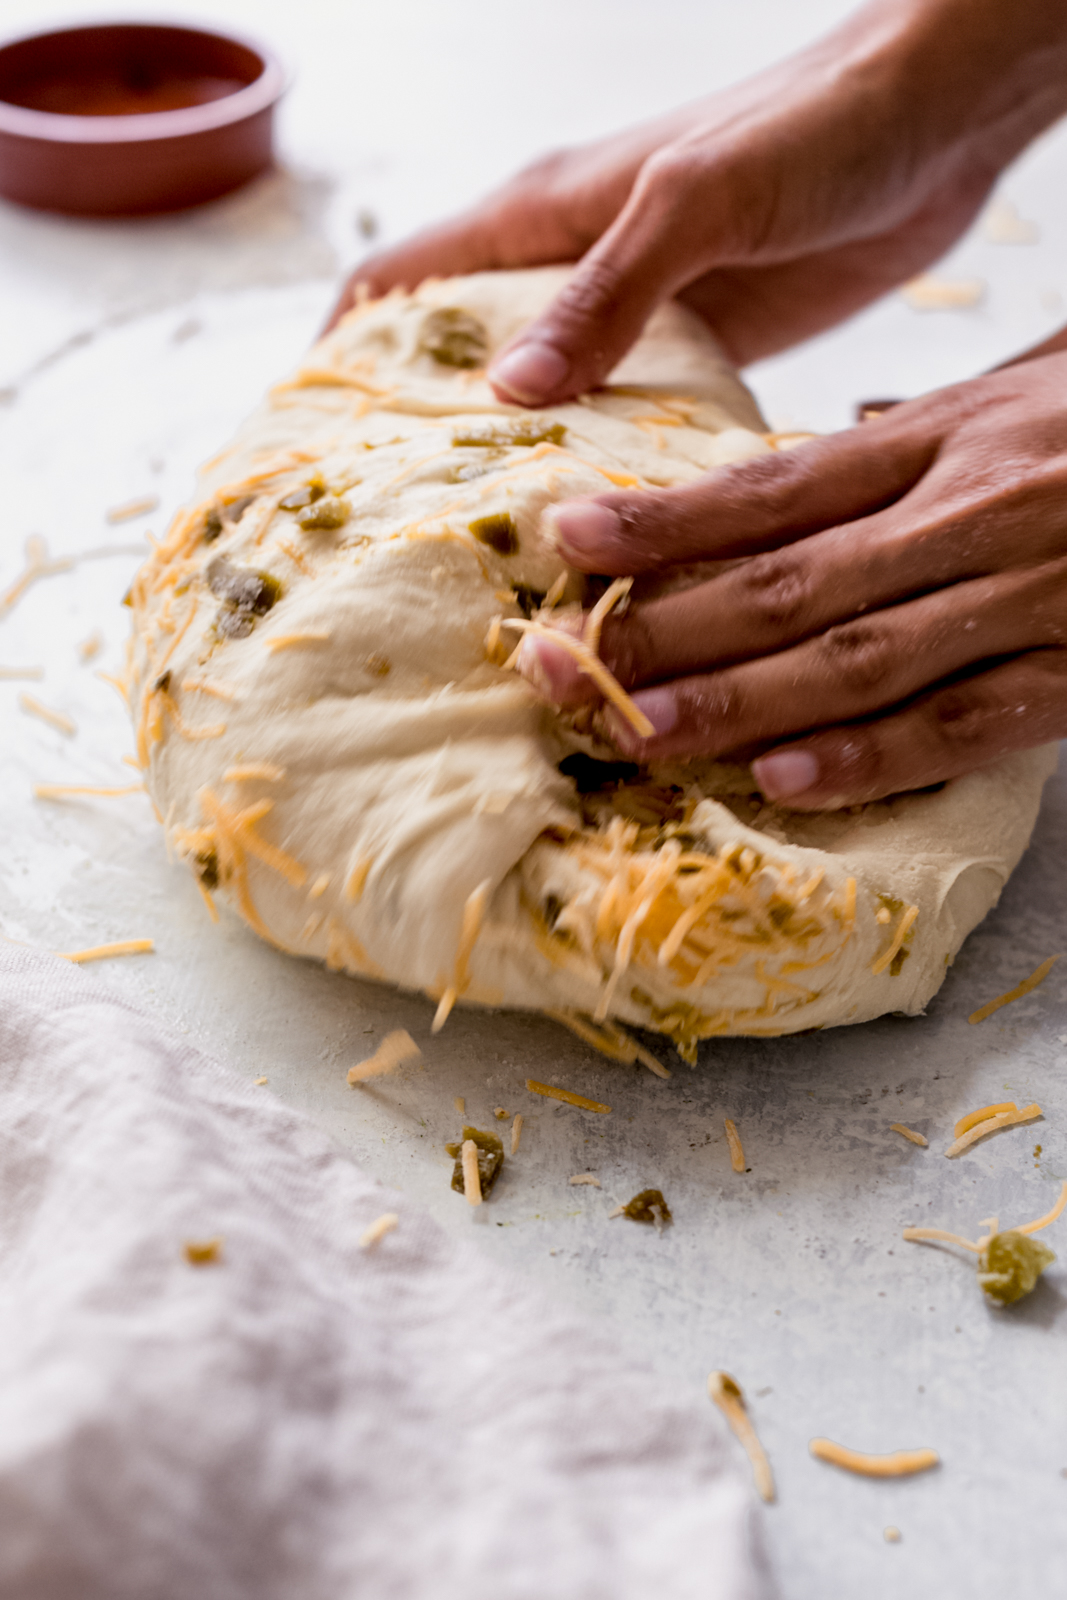 hands rolling and incorporating ingredients into bread dough